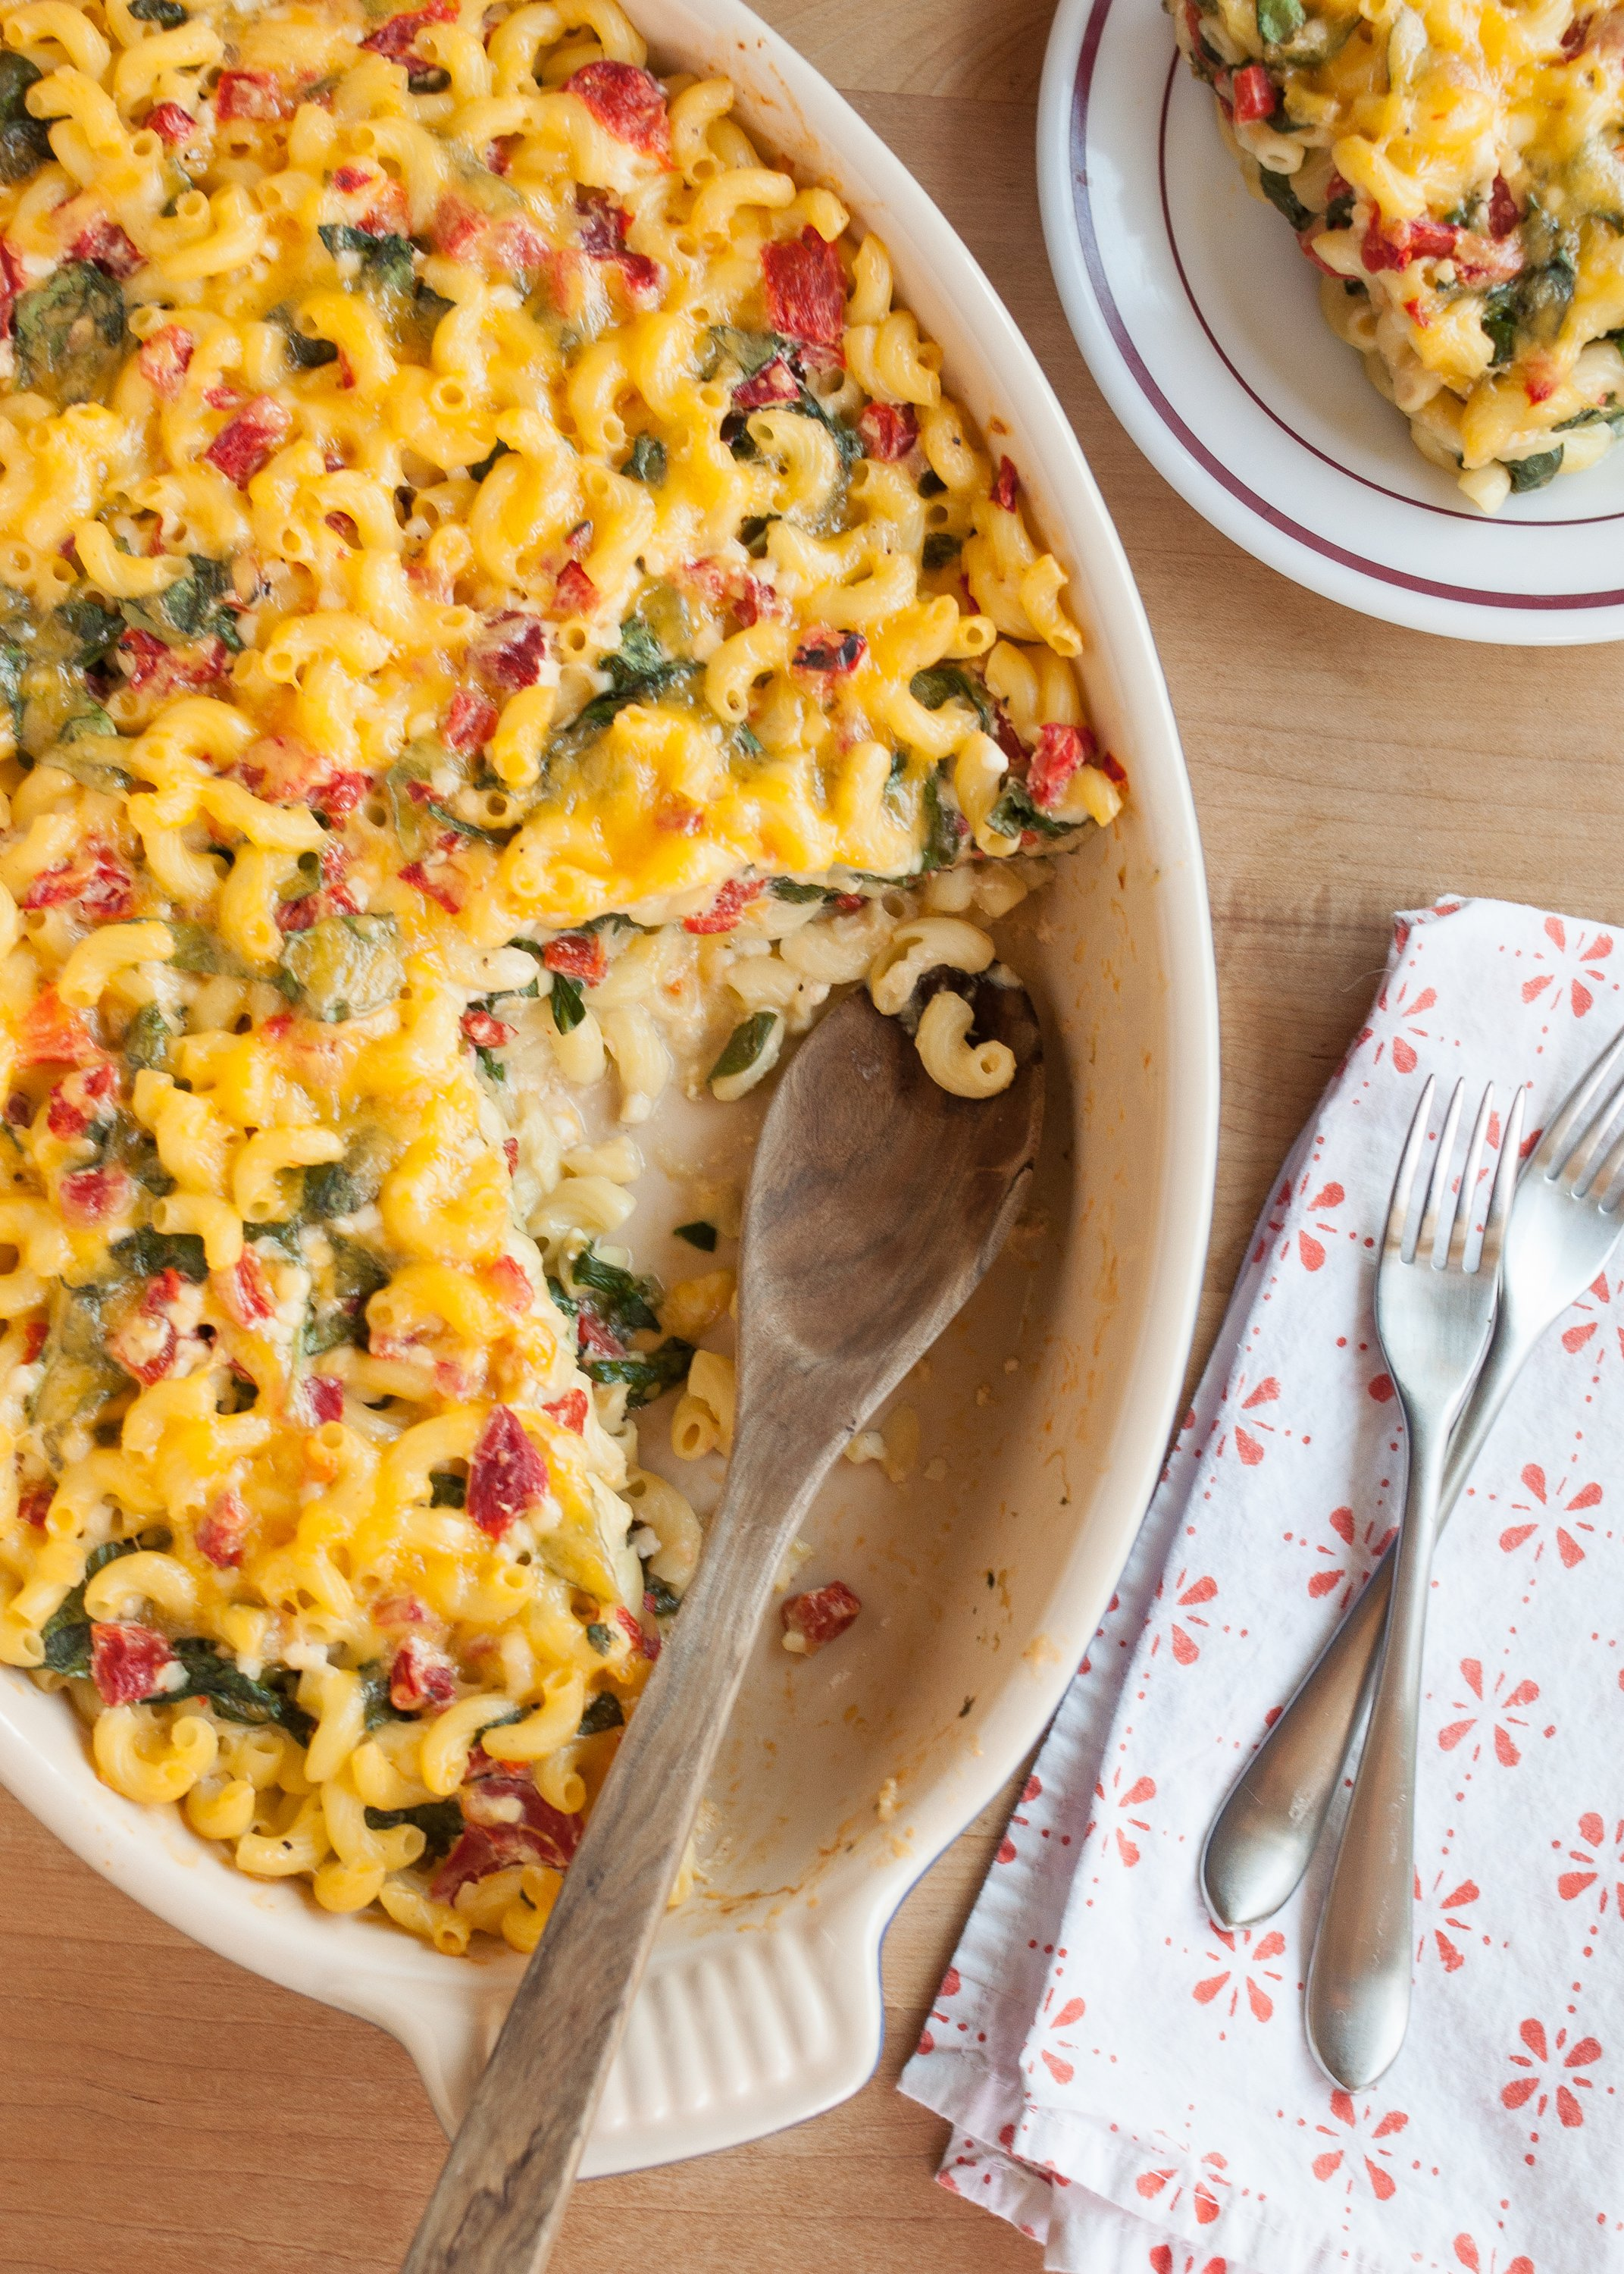 12 Hearty Casseroles for Cold Winter Nights | Kitchn